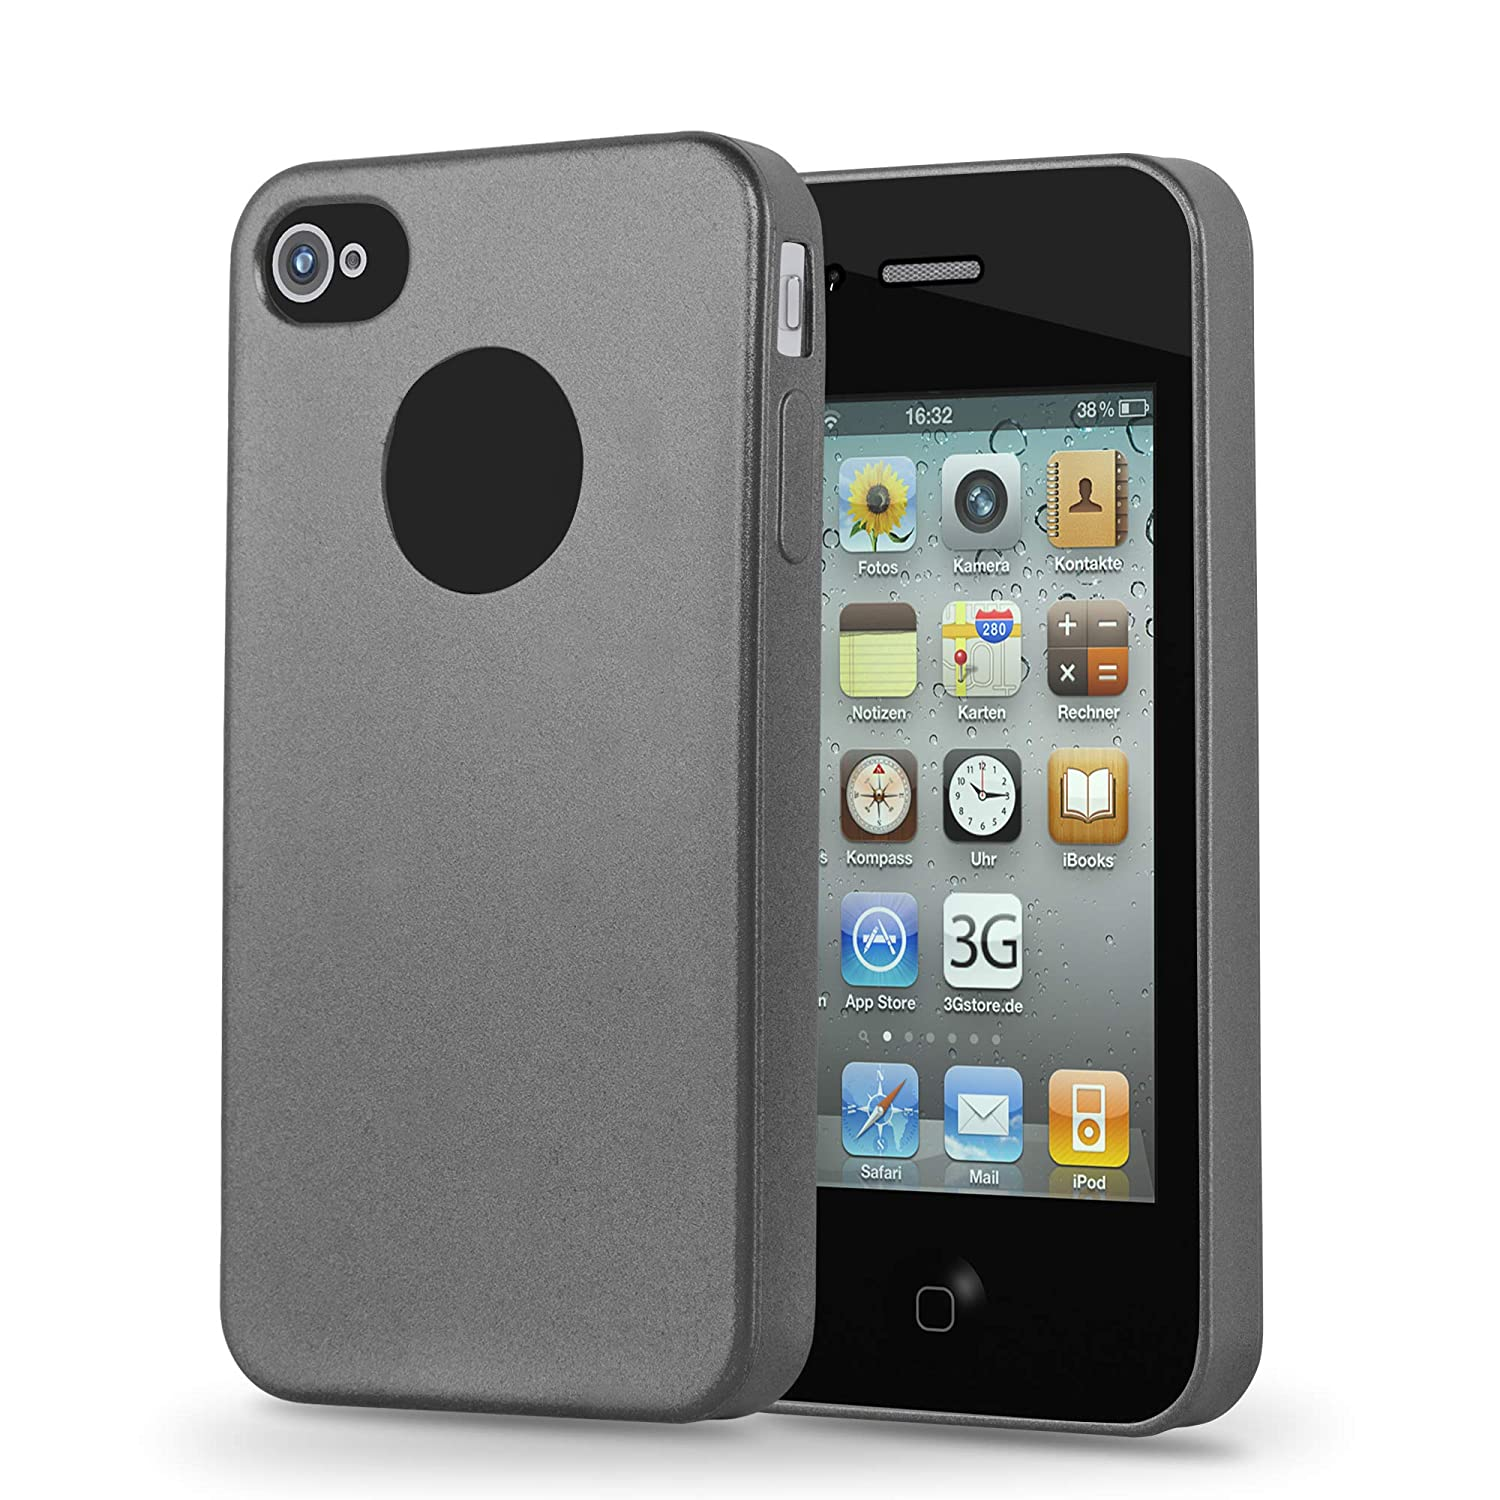 8f6b094fb8a39f Cadorabo Case Works with Apple iPhone 4 / iPhone 4S in Metallic Grey –  Shockproof and Scratch Resistant TPU Silicone Cover – Ultra Slim Protective  Gel Shell ...